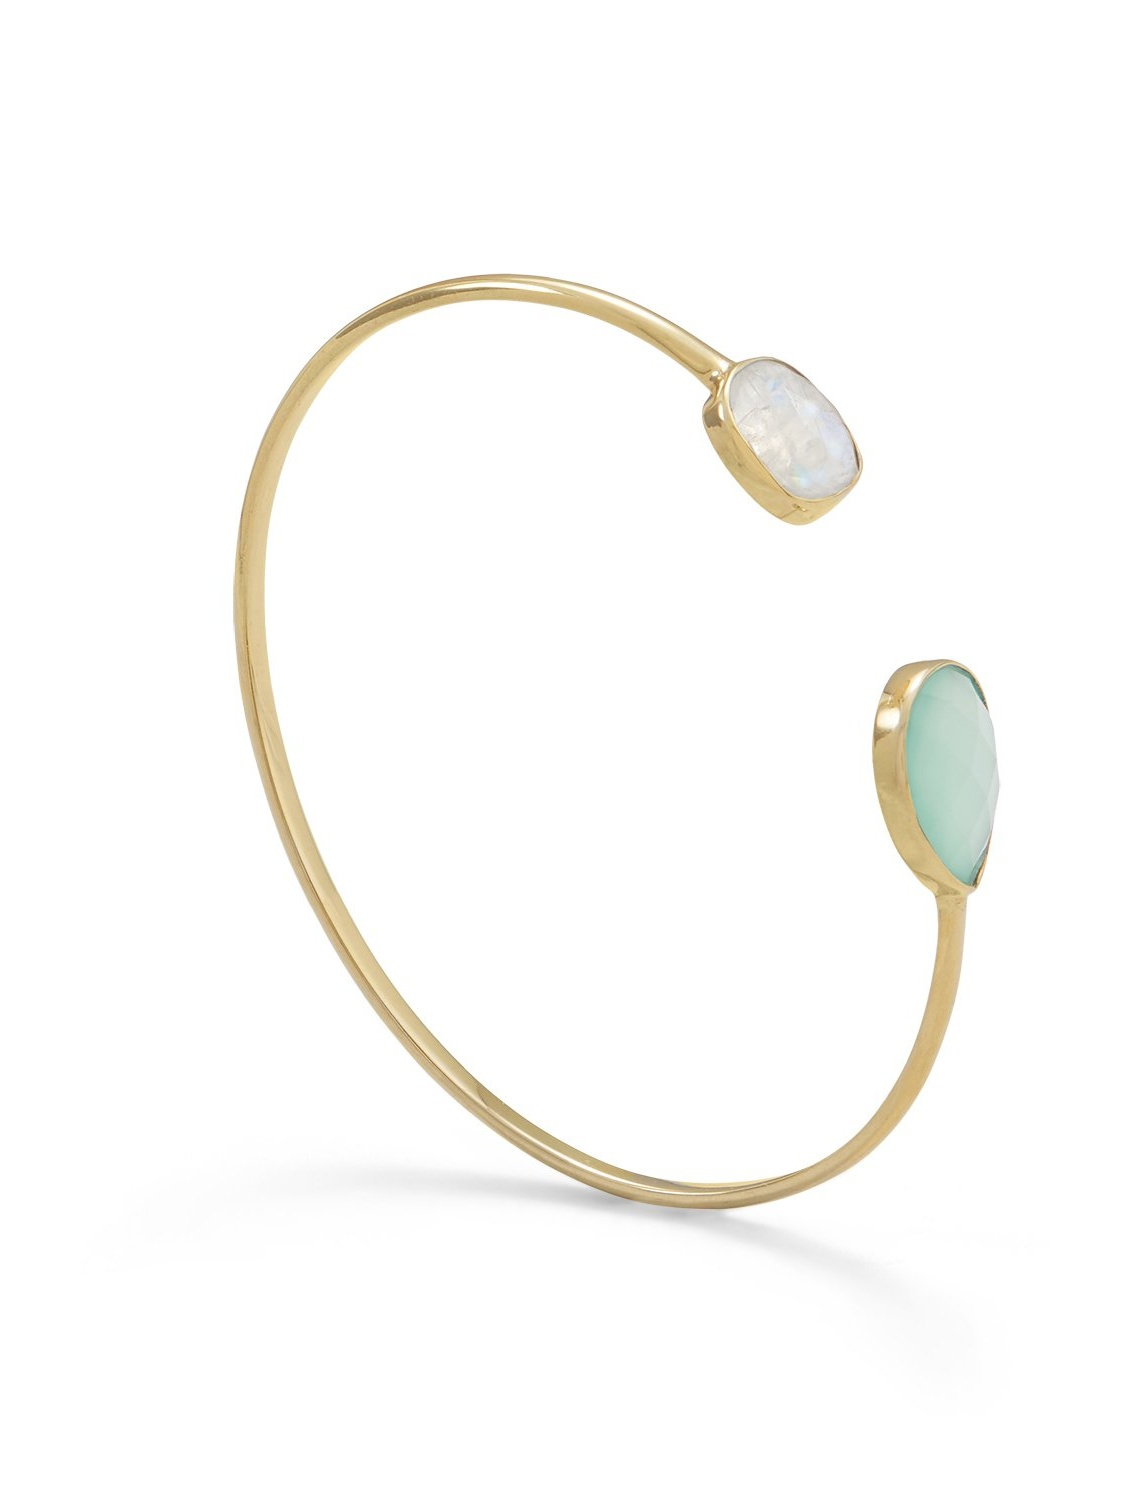 Gold-plated Rainbow Moonstone and Green Chalcedony Open Split Cuff Bracelet by unknown